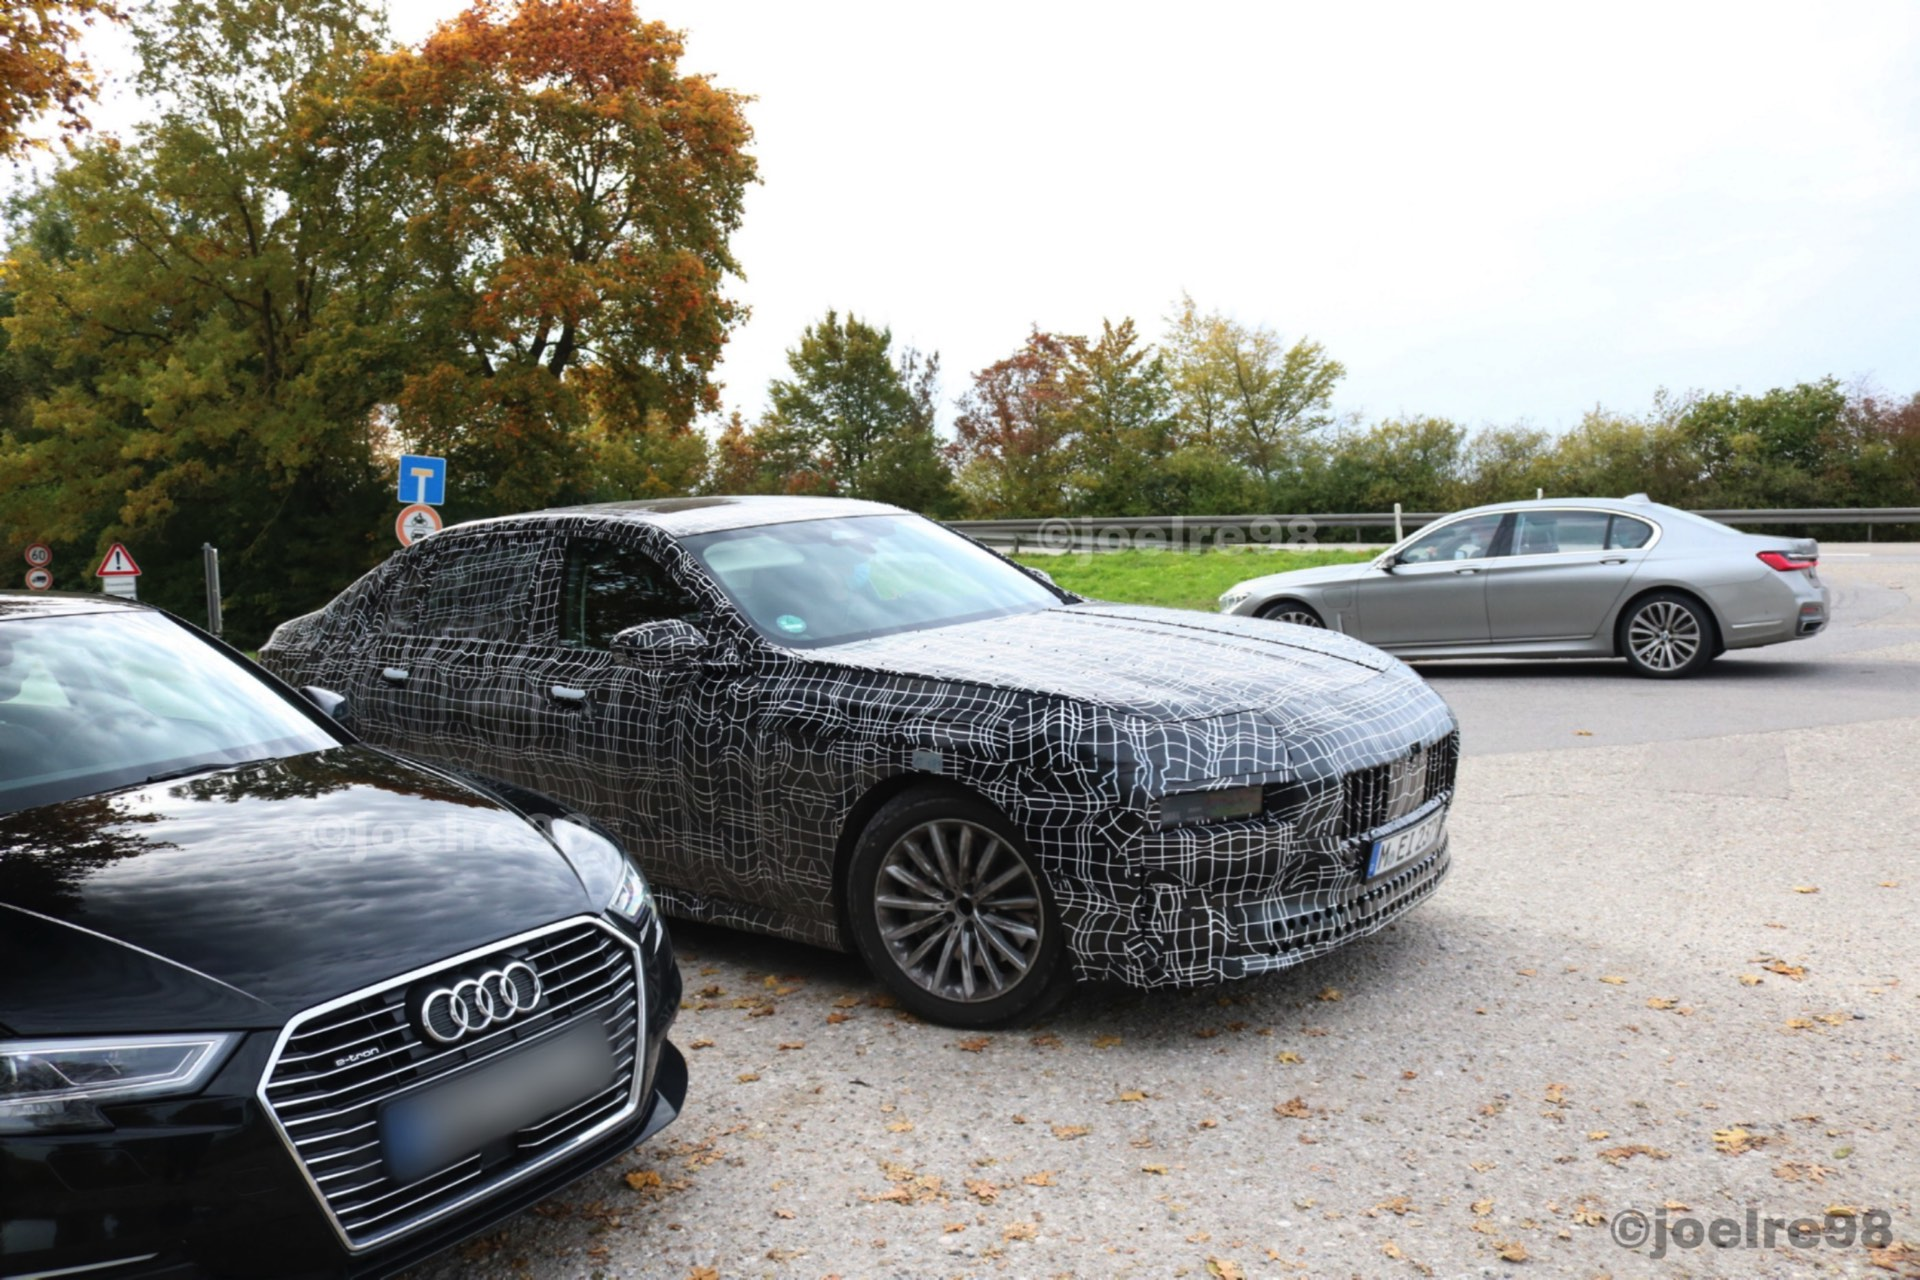 SPIED: Next-Gen BMW 7 Series Spotted with Old-School Design Elements